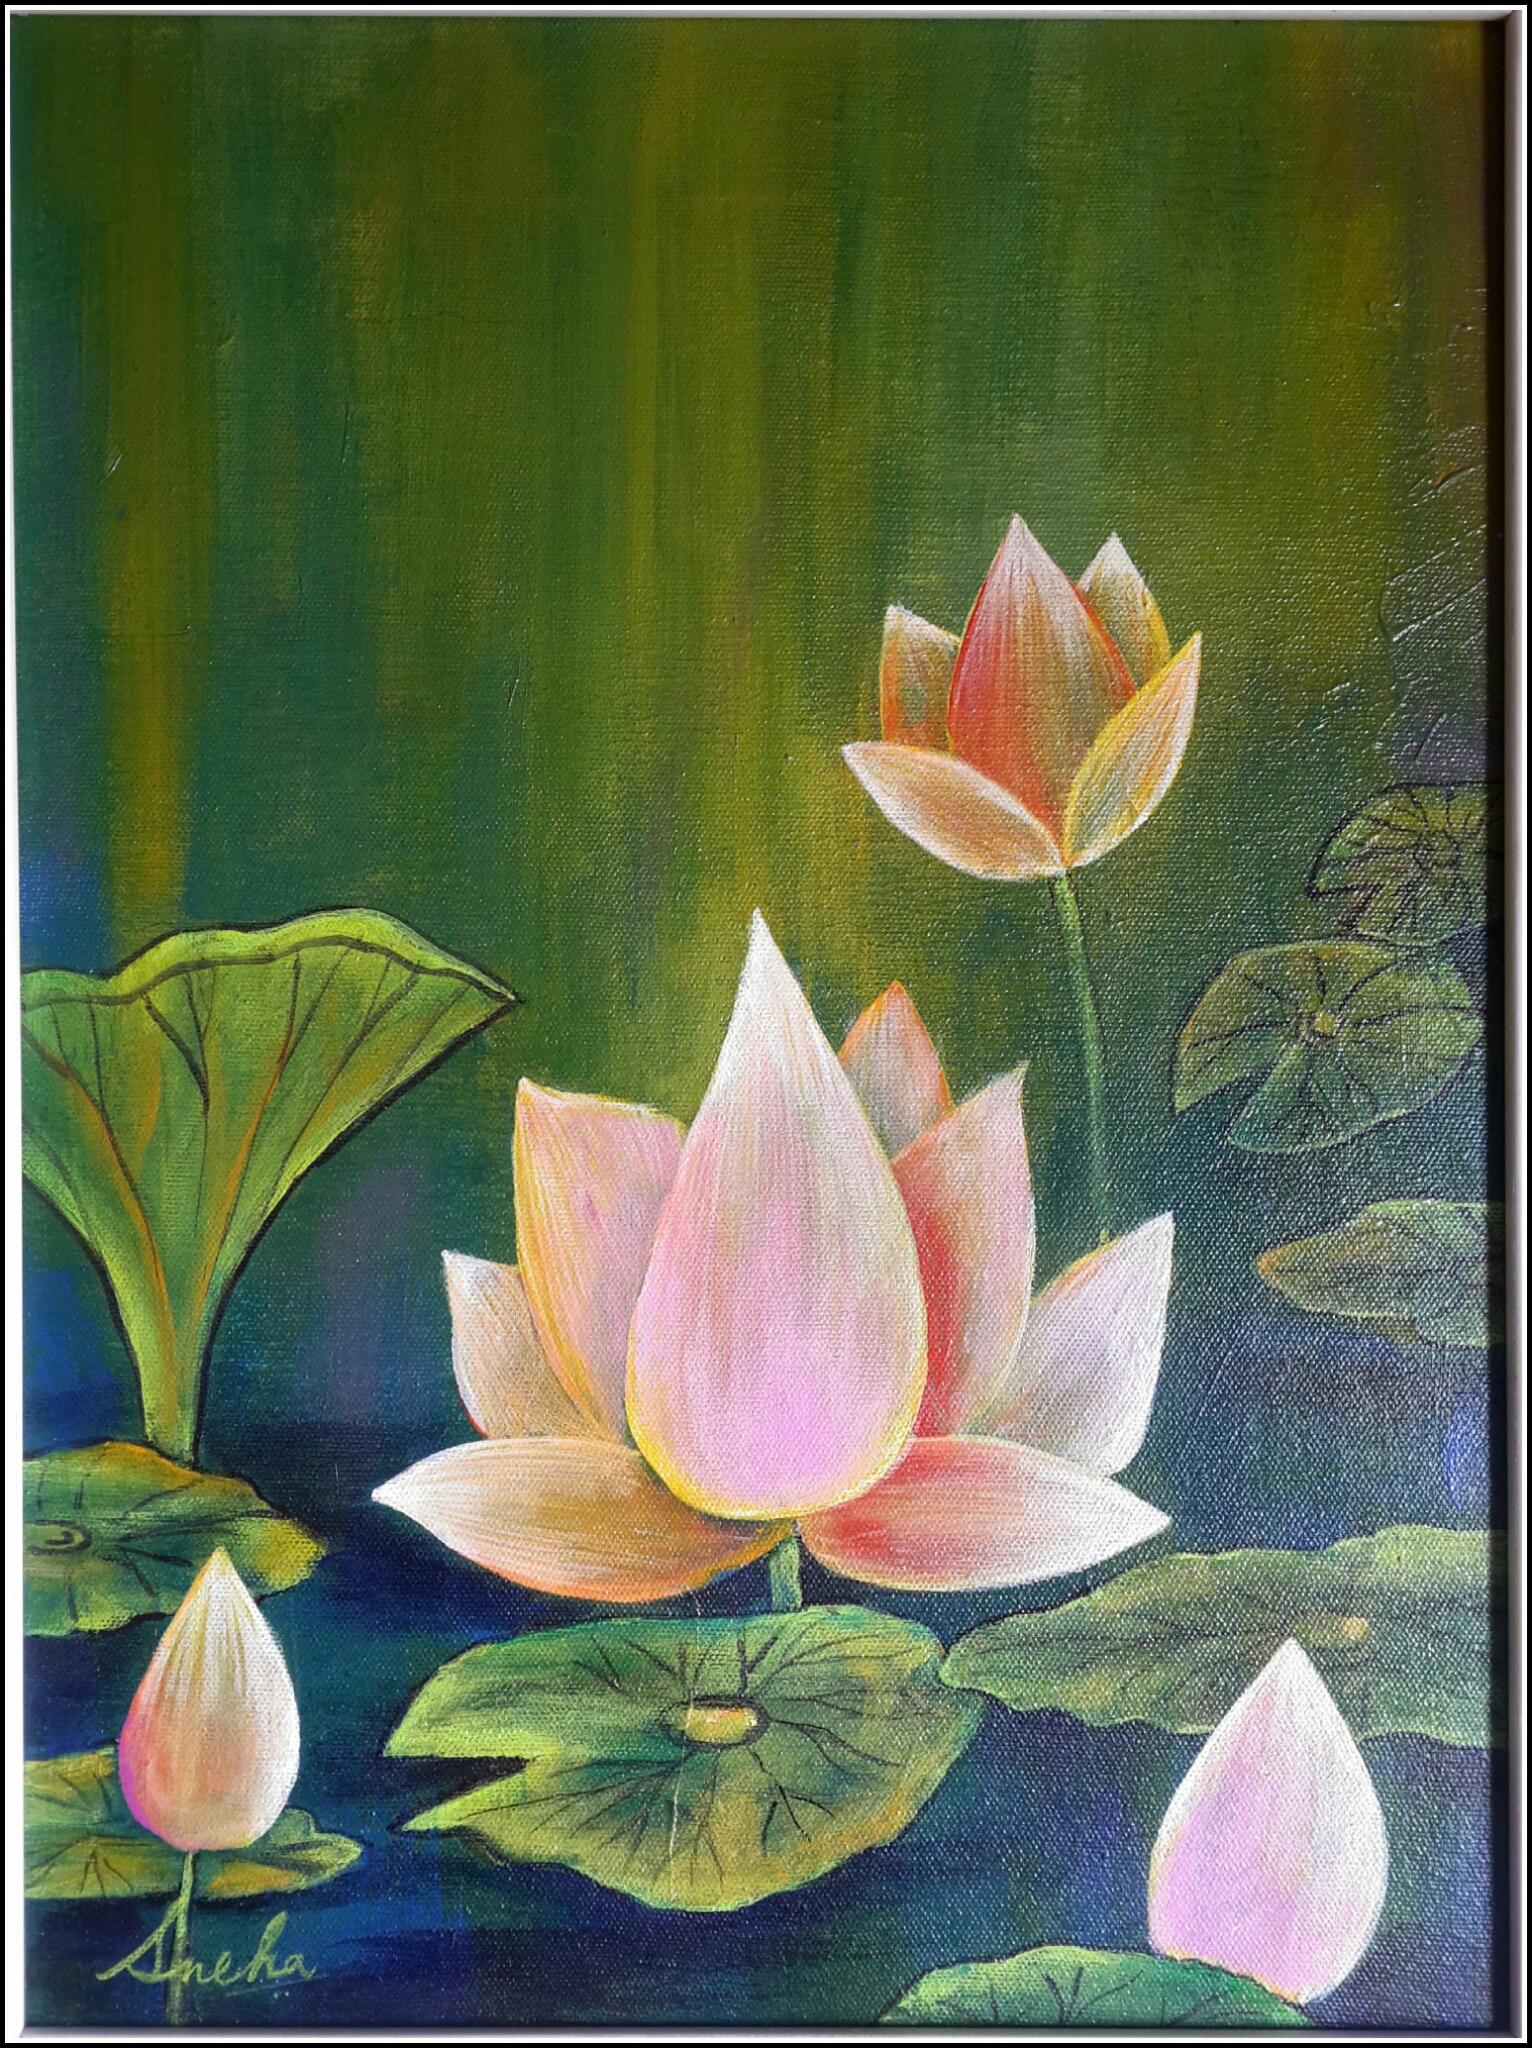 The scent of Lotus 13012